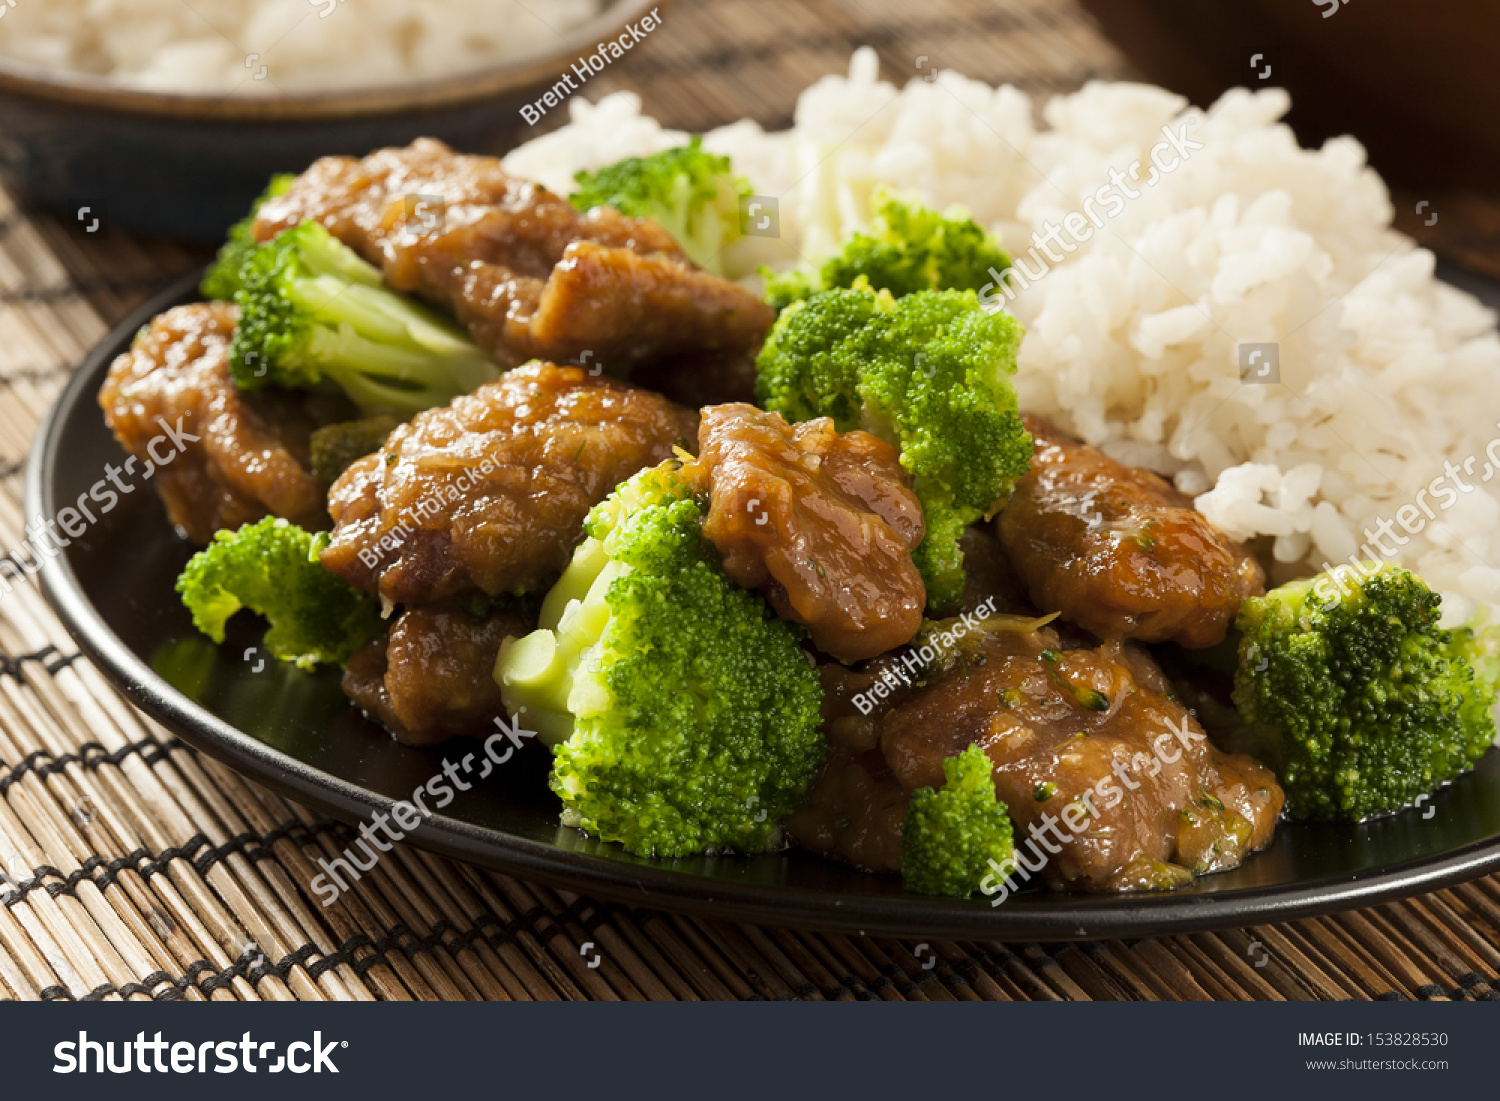 Homemade Asian Beef And Broccoli With Rice Stock Photo ...